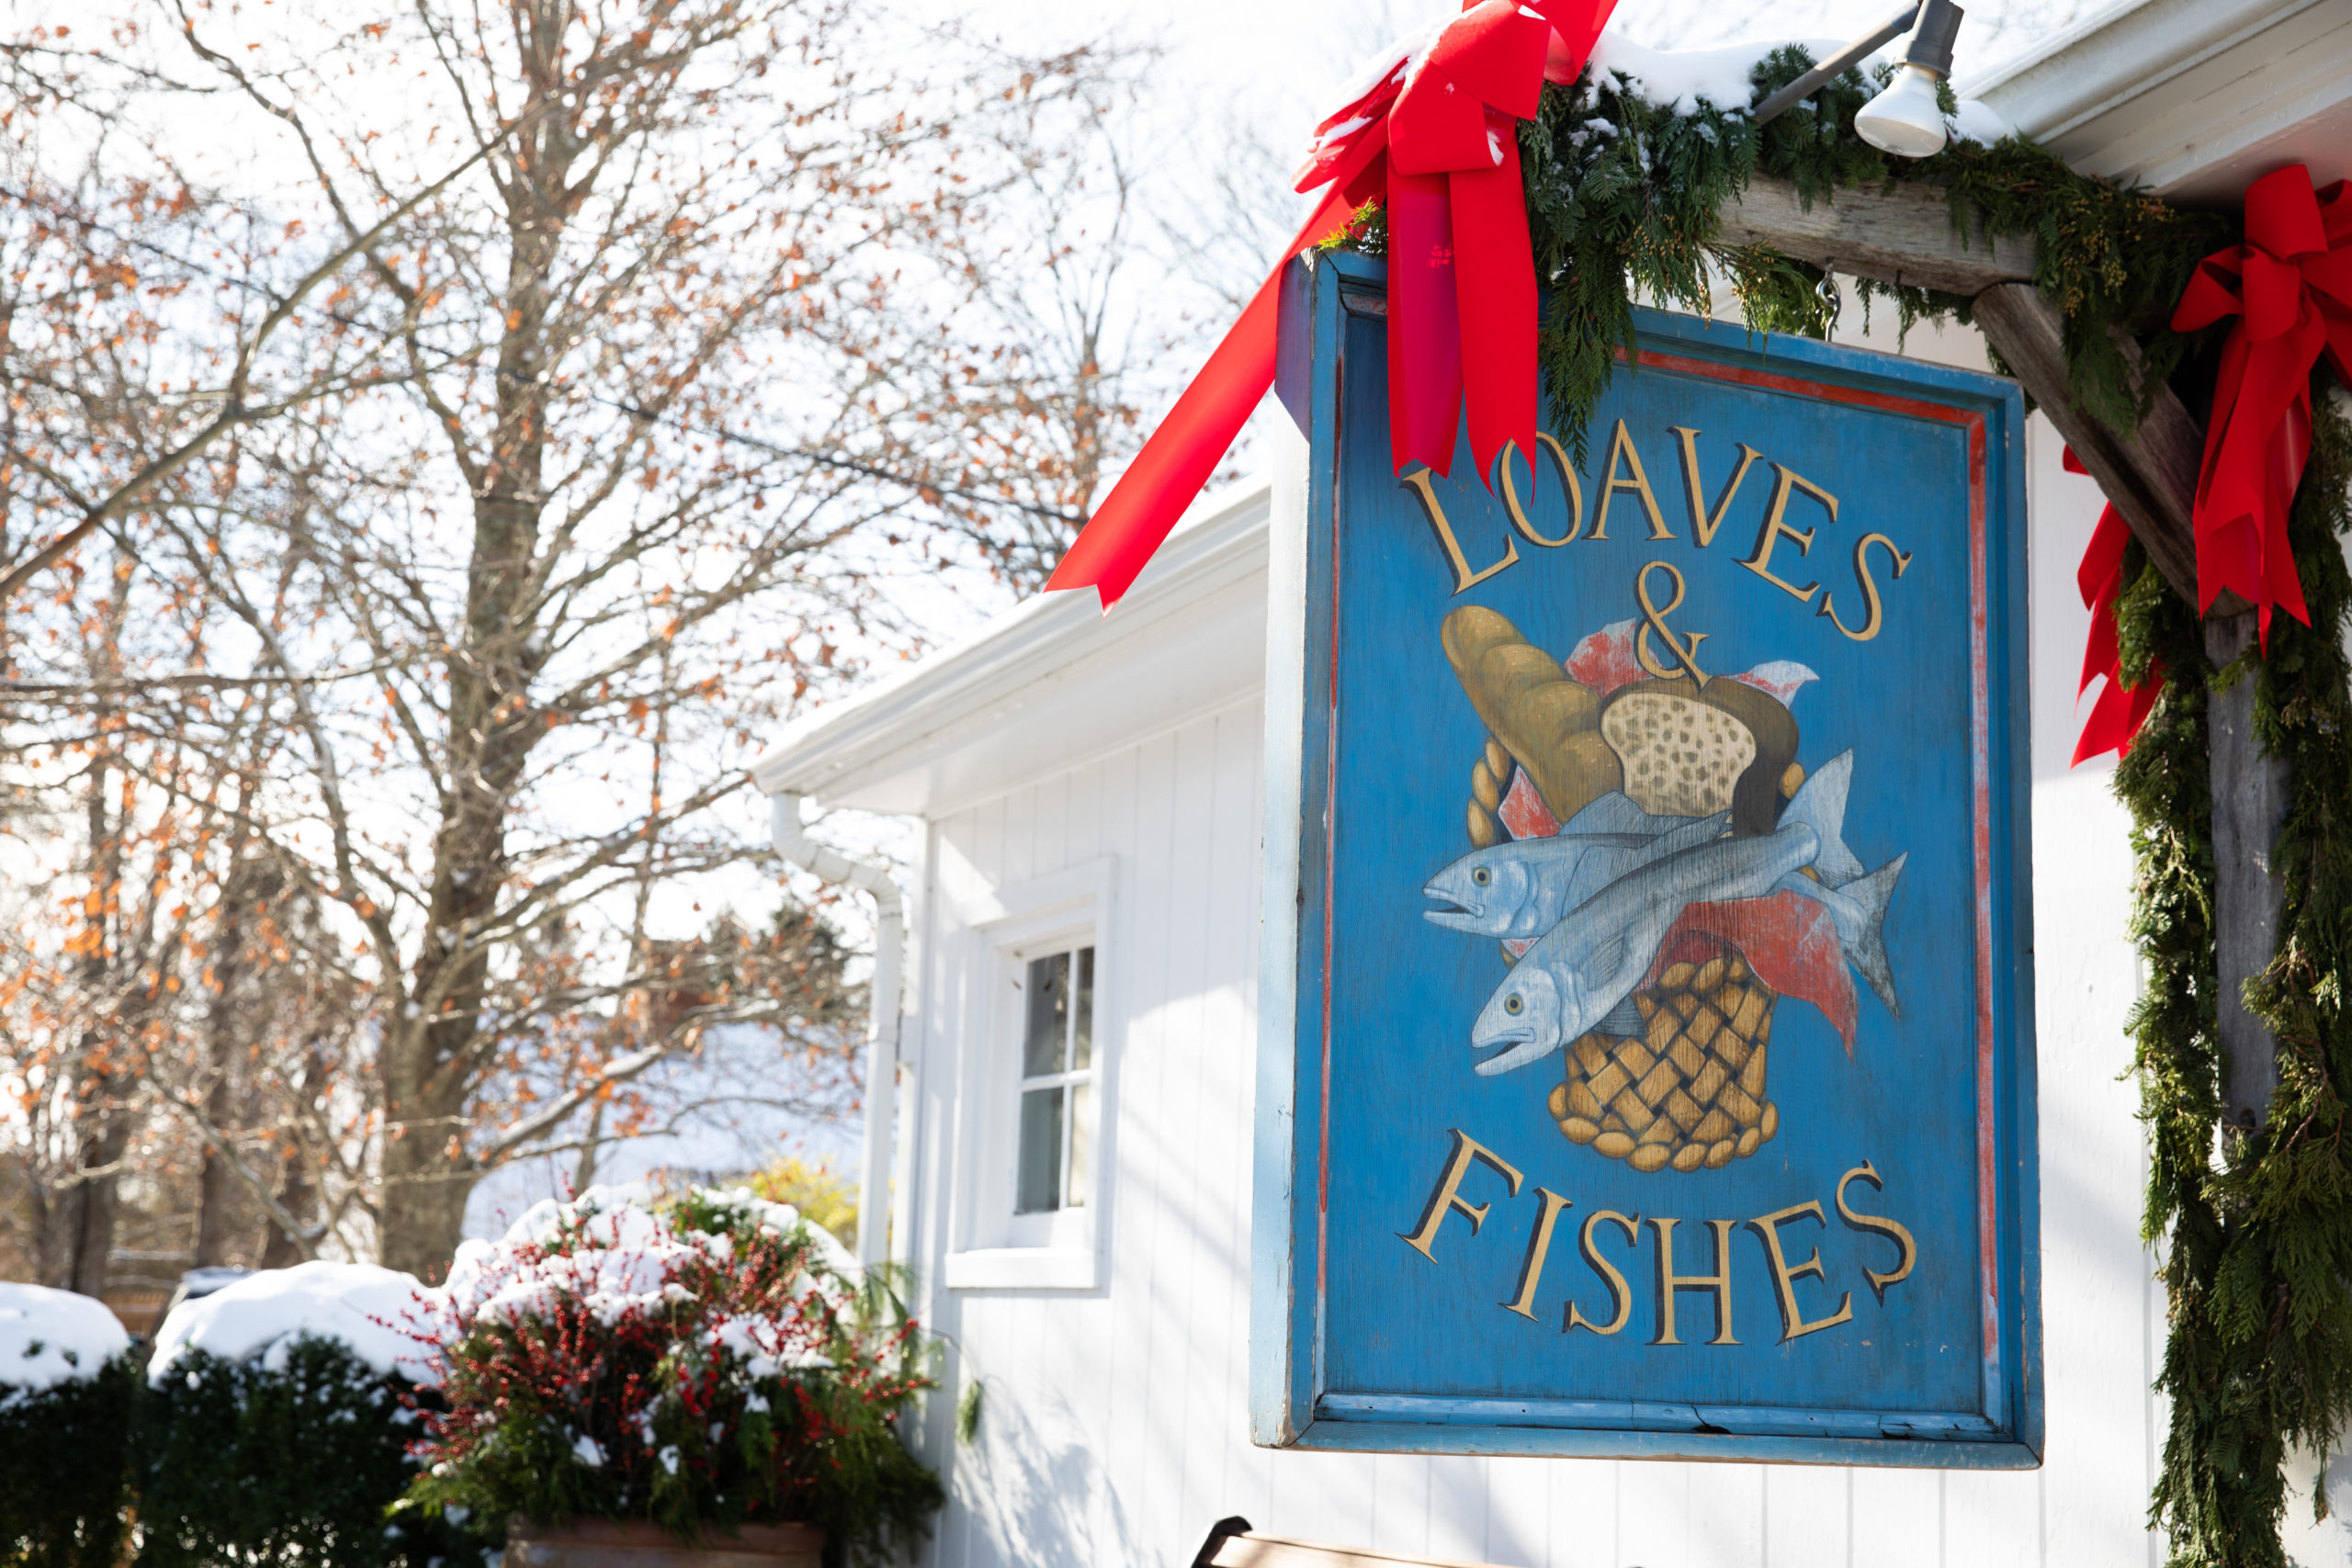 Loaves & Fishes in Sagaponack.